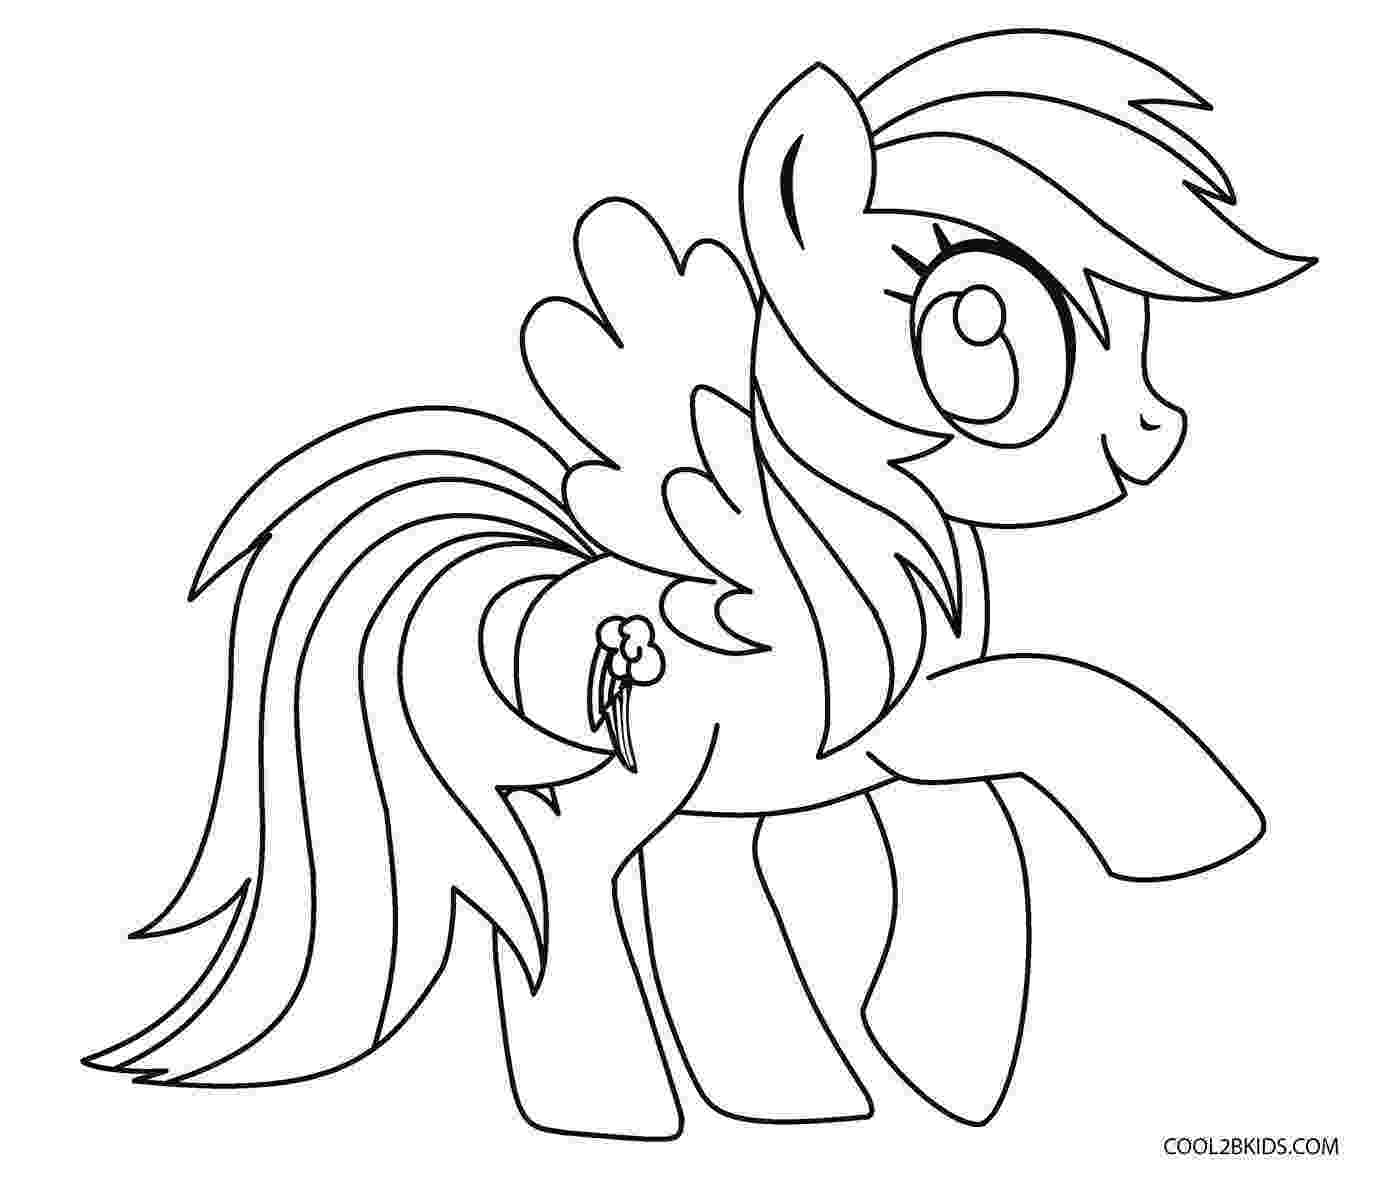 my little pony printables coloring pages free printable my little pony coloring pages for kids printables coloring my little pages pony